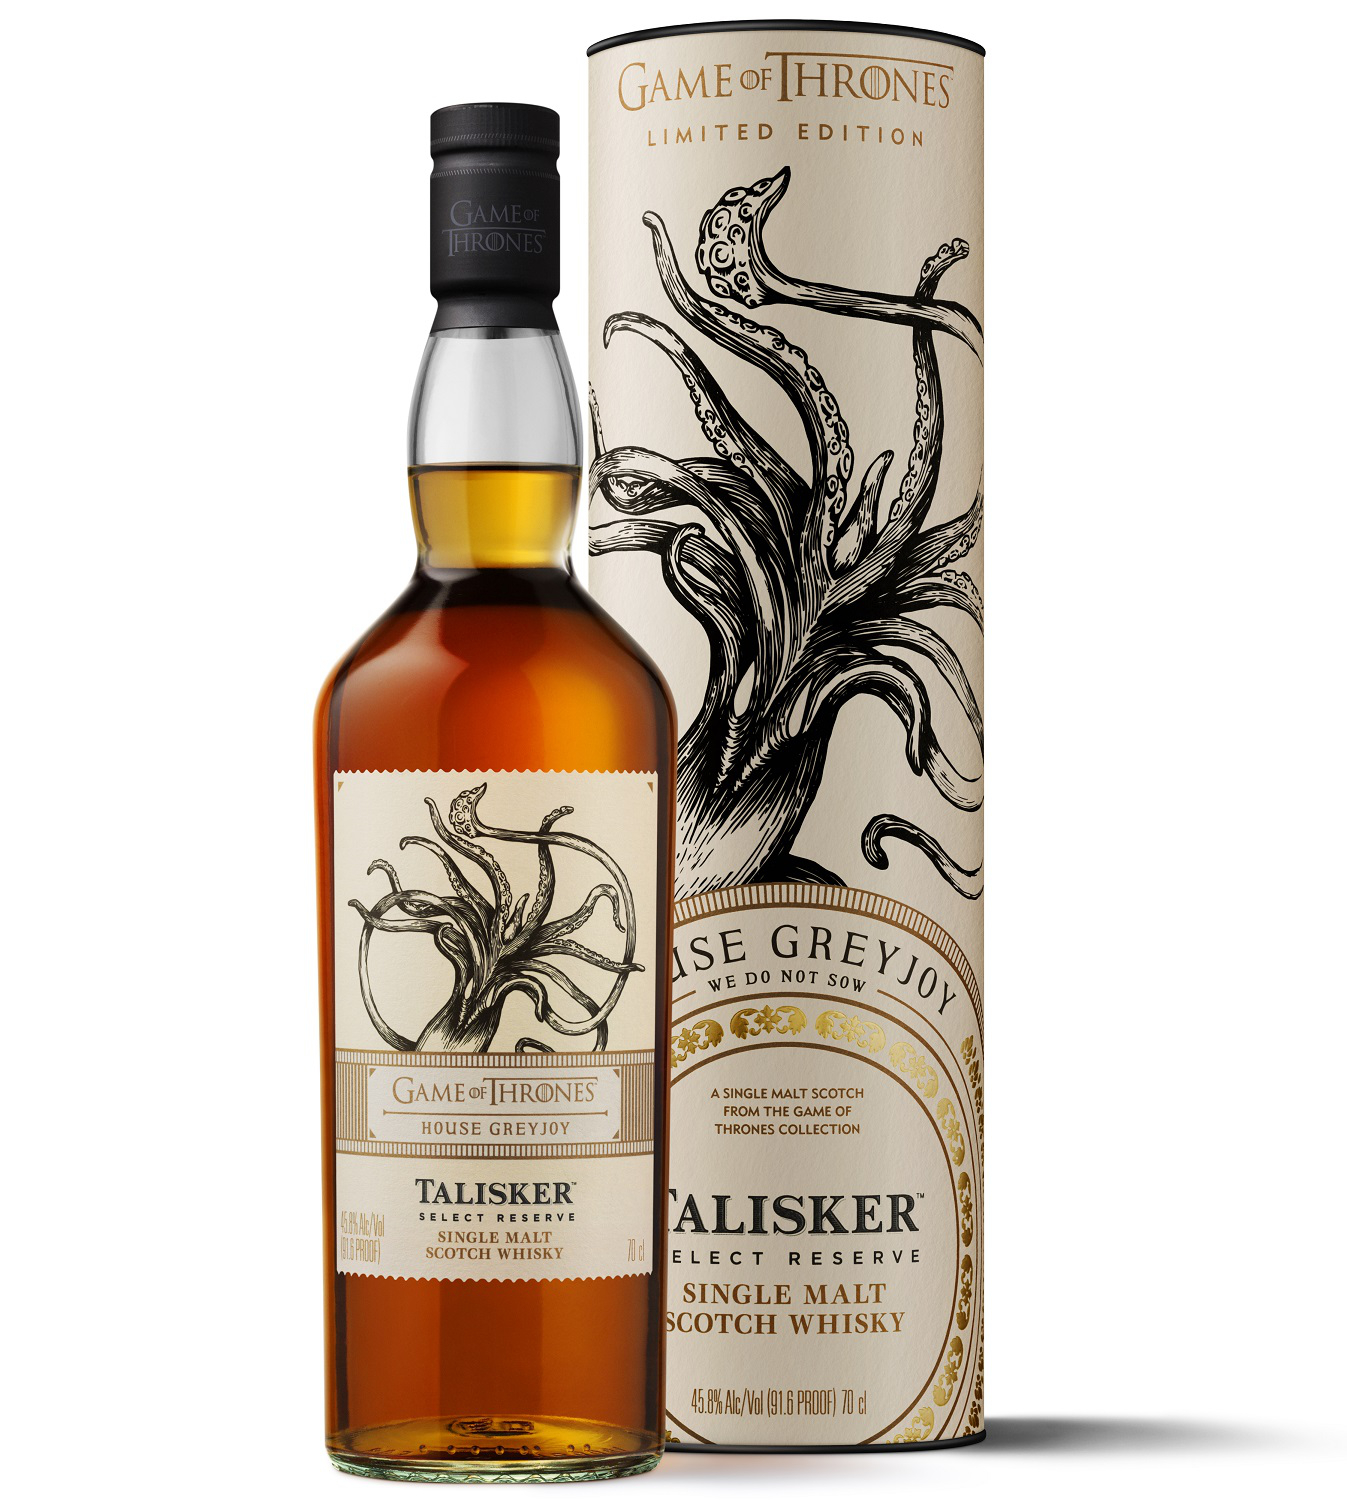 Talisker Select Reserve Game of Thrones Whisky